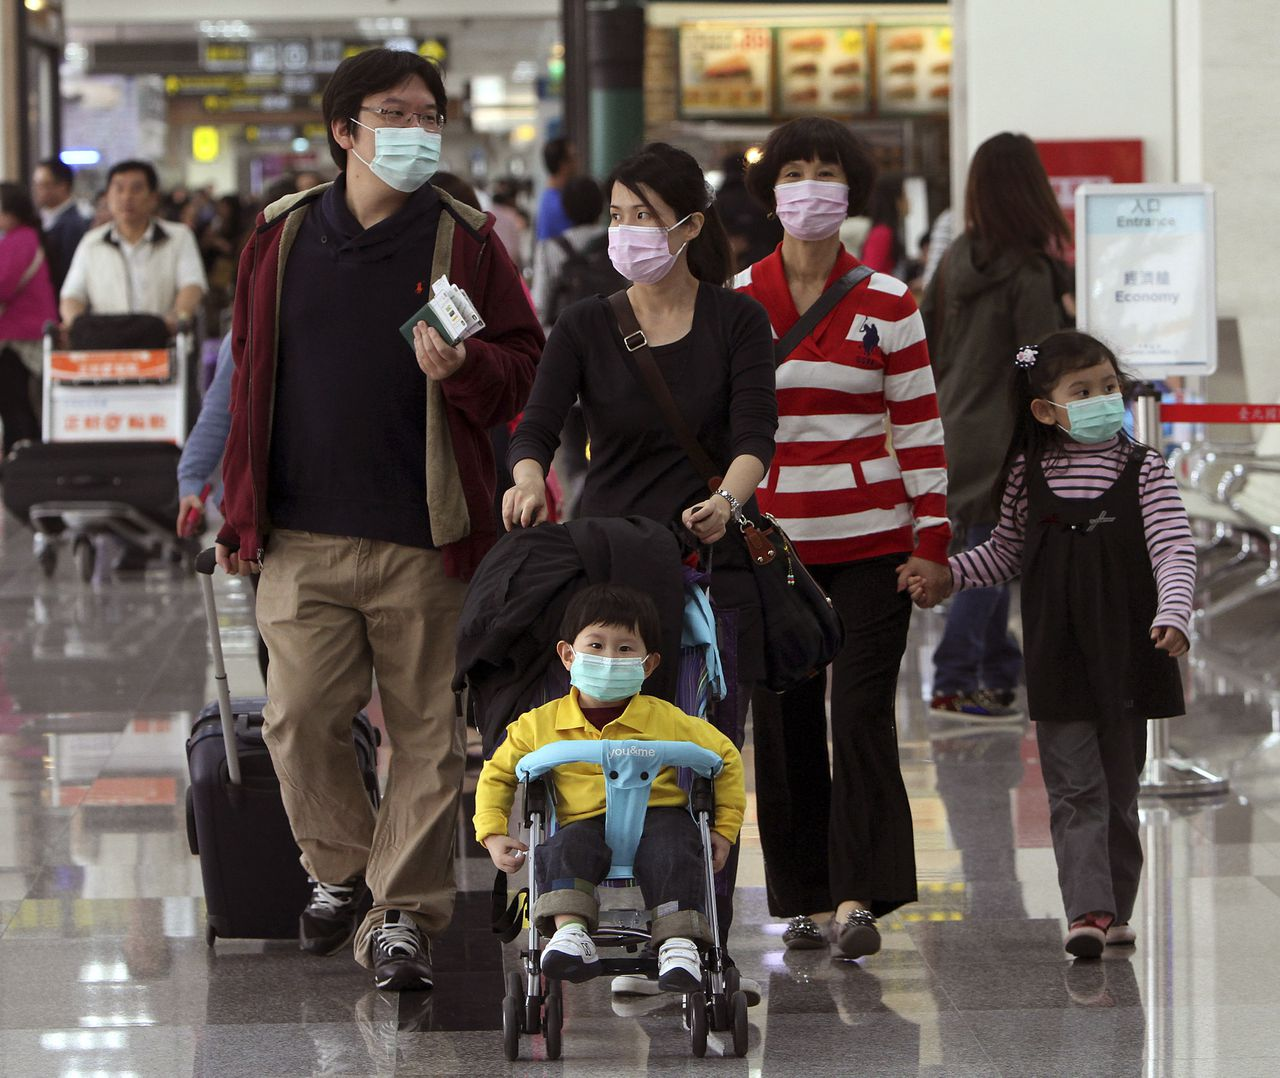 Tourists wear masks at the Songshan Airport in Taipei, Taiwan, Saturday, April 27, 2013. Taiwan confirmed its first case of a new deadly strain of bird flu. The Centers for Disease Control said Wednesday that a 53-year-old man became ill with fever after returning from a visit to the eastern Chinese province of Jiangsu on April 9. He twice tested negative for H7N9 but eventually tested positive Wednesday after his condition deteriorated, CDC official Chang Feng-yi said. (AP Photo/Chiang Ying-ying)